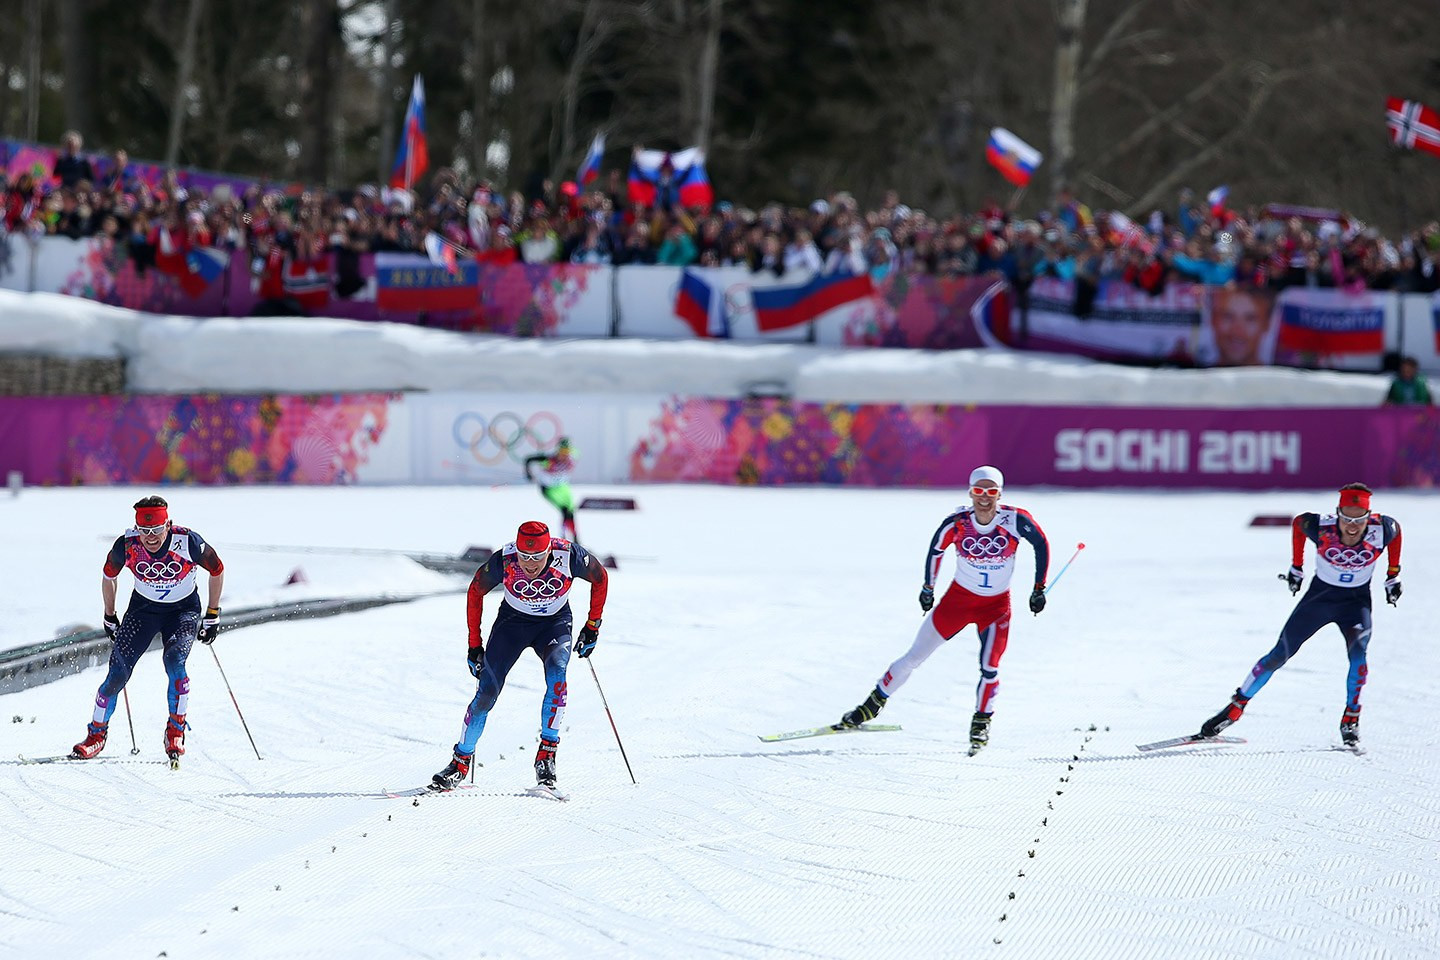 South Korea's Sports Ministry had claimed that the participation of Russian athletes at Pyeongchang 2018 was vital to the success of the Winter Olympic Games ©Getty Images